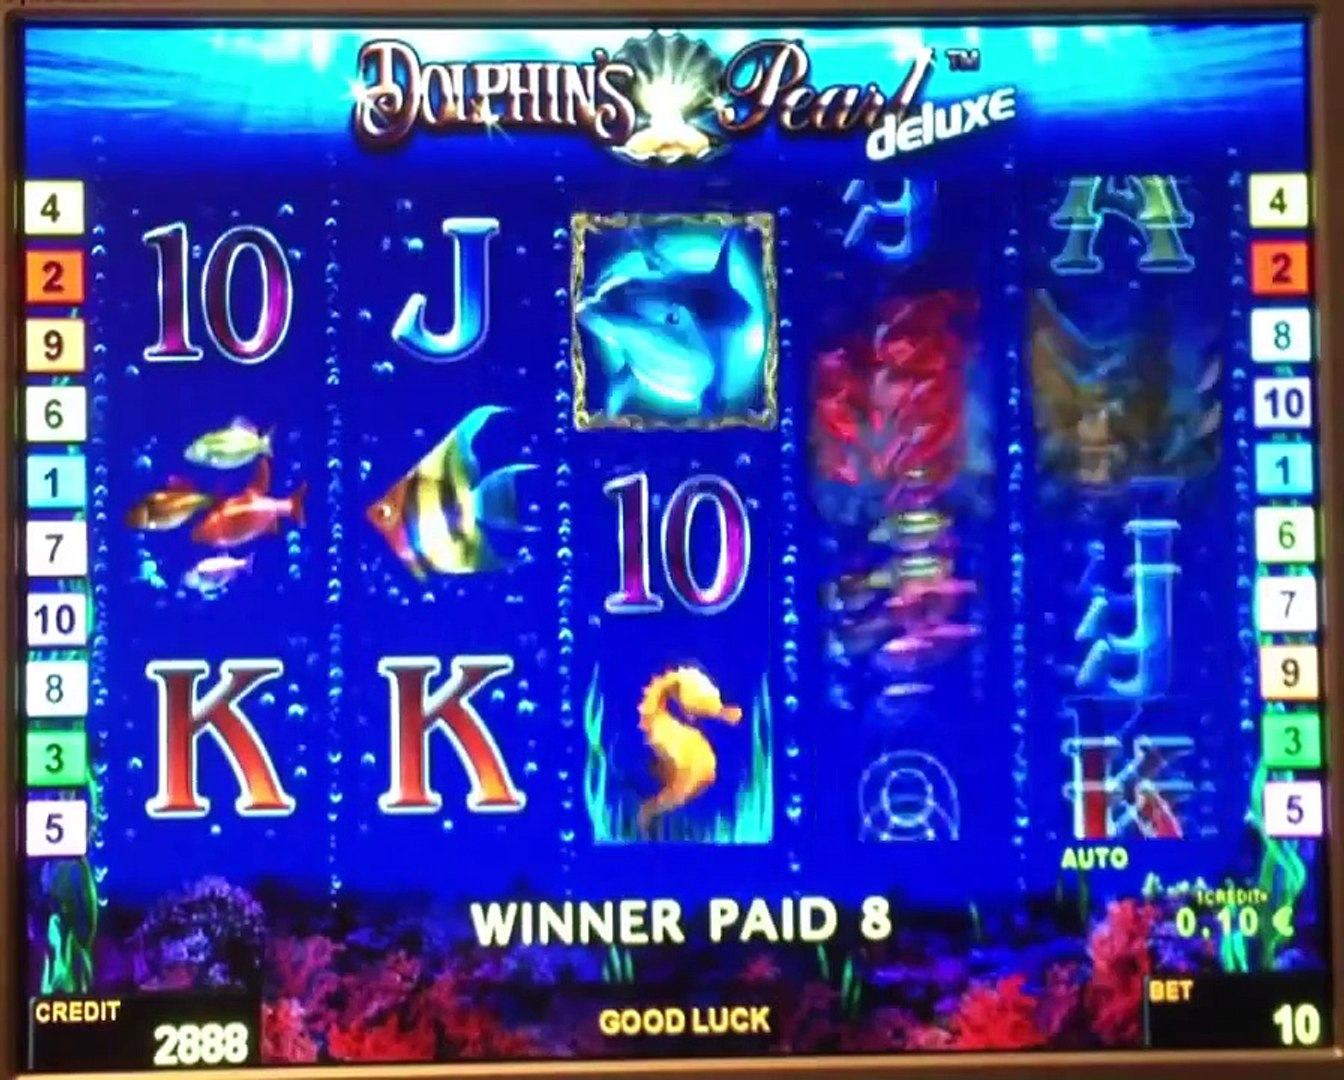 Ultimate 10 ★ Factory, Slots Machines, Penny Slots, Consoles, VideoGames, Gaming Machines